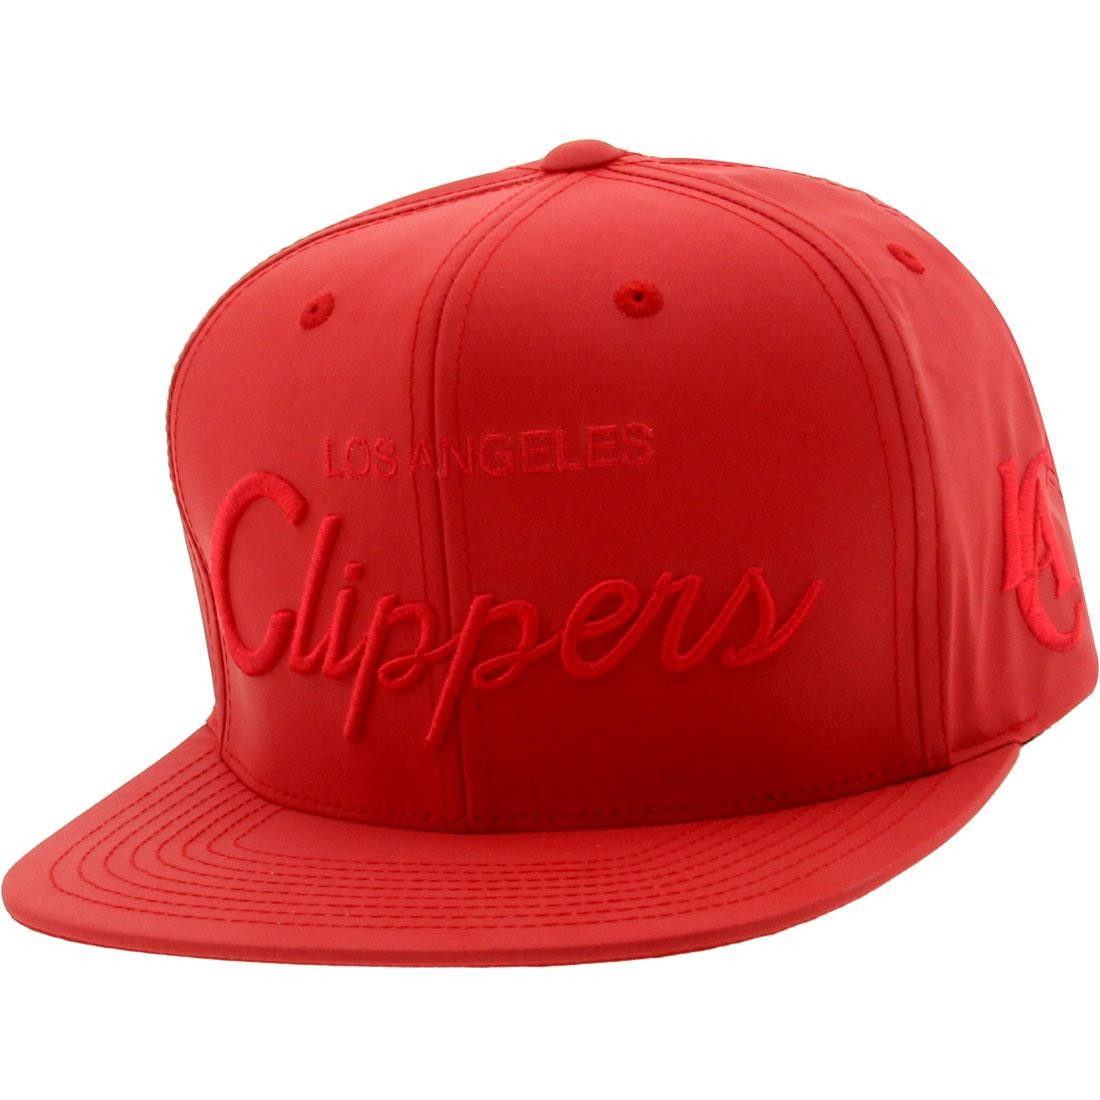 Mitchell And Ness Los Angeles Clippers 3M Crown Snapback Cap (red)